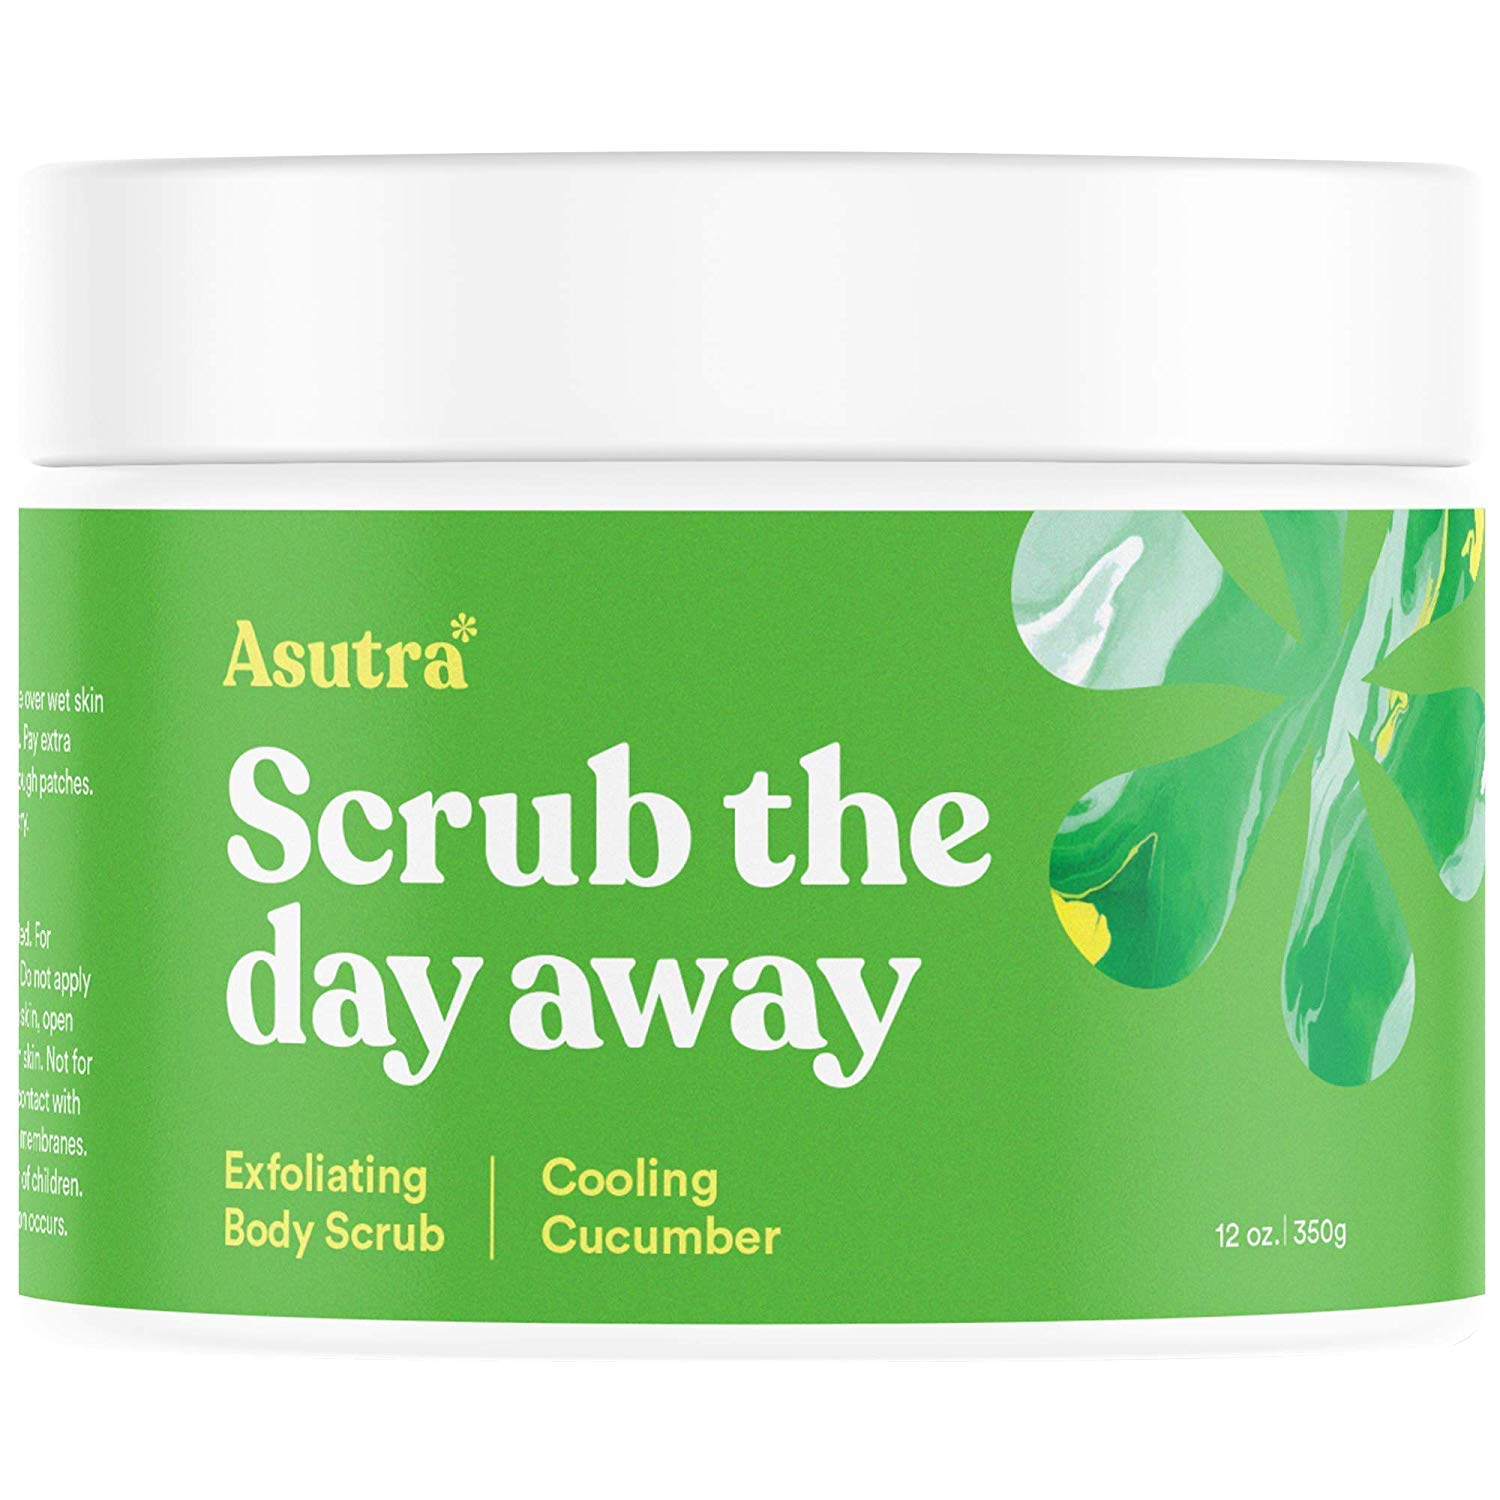 ASUTRA Dead Sea Salt Body Scrub Exfoliator (Cooling Cucumber), 12 oz | Ultra Hydrating, Gentle, Moisturizing | All Natural & Organic Jojoba, Sweet Almond, Argan Oils